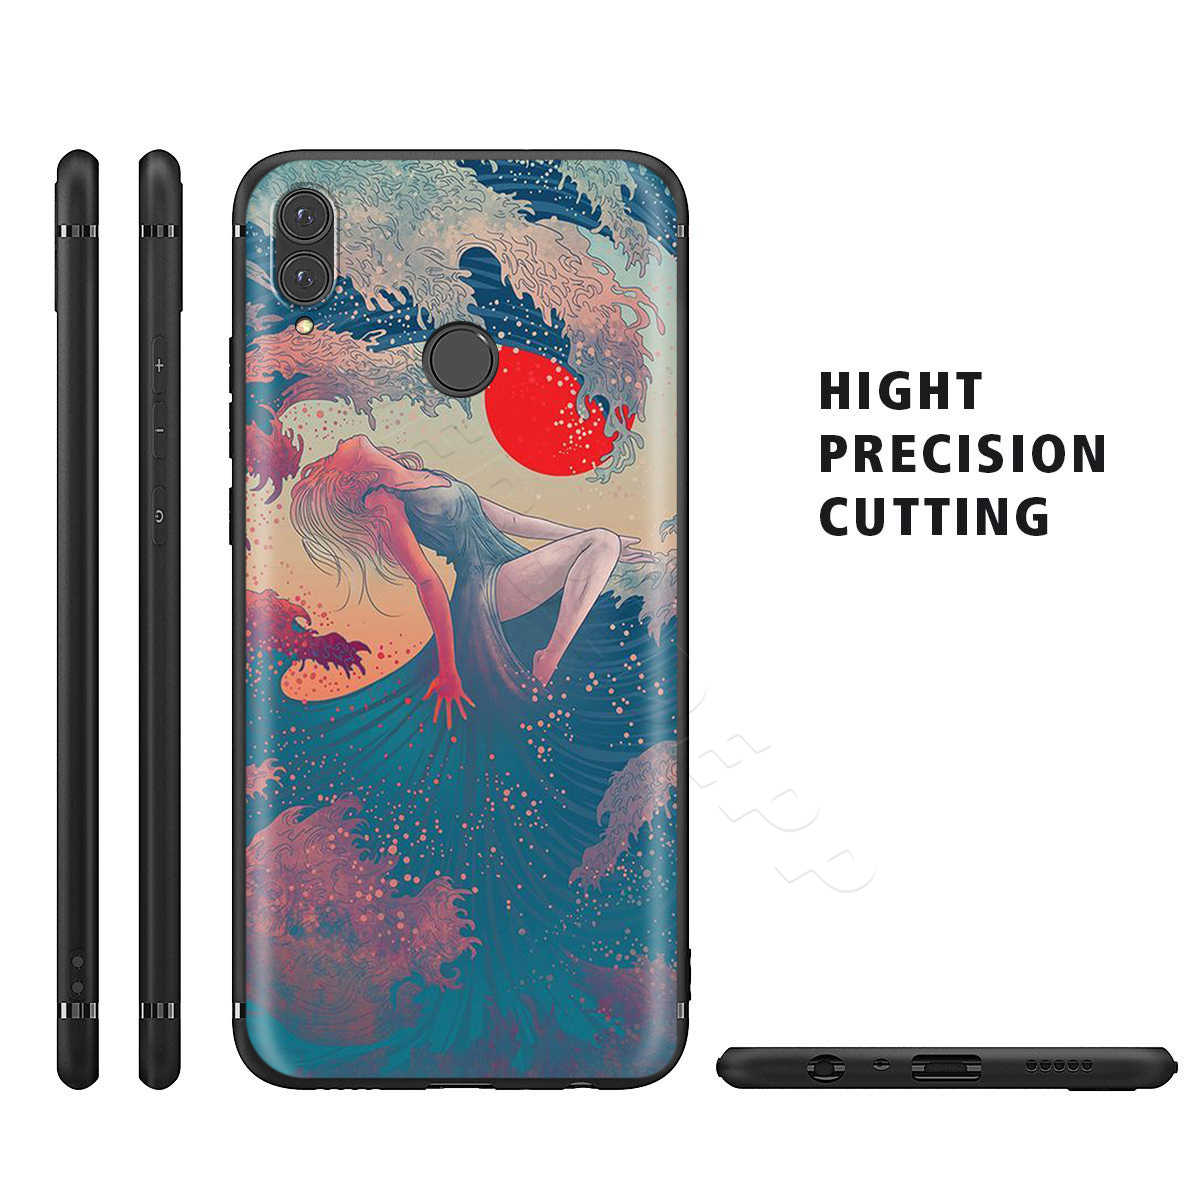 Webbedepp Japanese Style Art Japan Case for Huawei Honor 6A 7A 7C 7X 8 8X 8C 9 9X 10 20 Lite Pro Note View